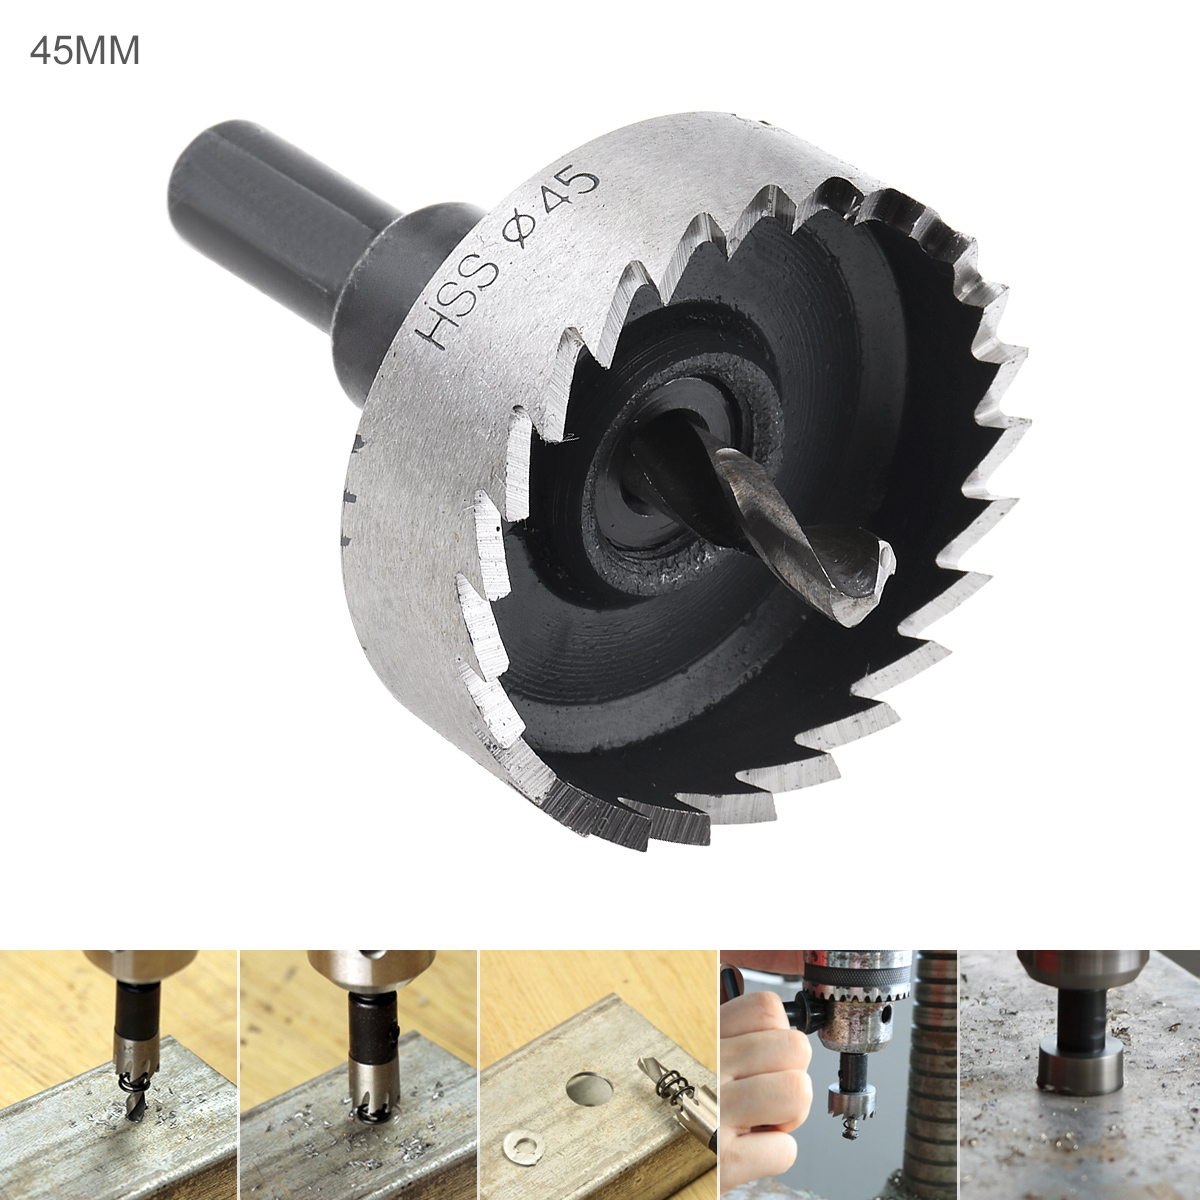 45mm HSS Hole Saw Cutter Drill Bits For Pistol Drills /Bench Drills / Magnetic Drills / Air Gun Drills